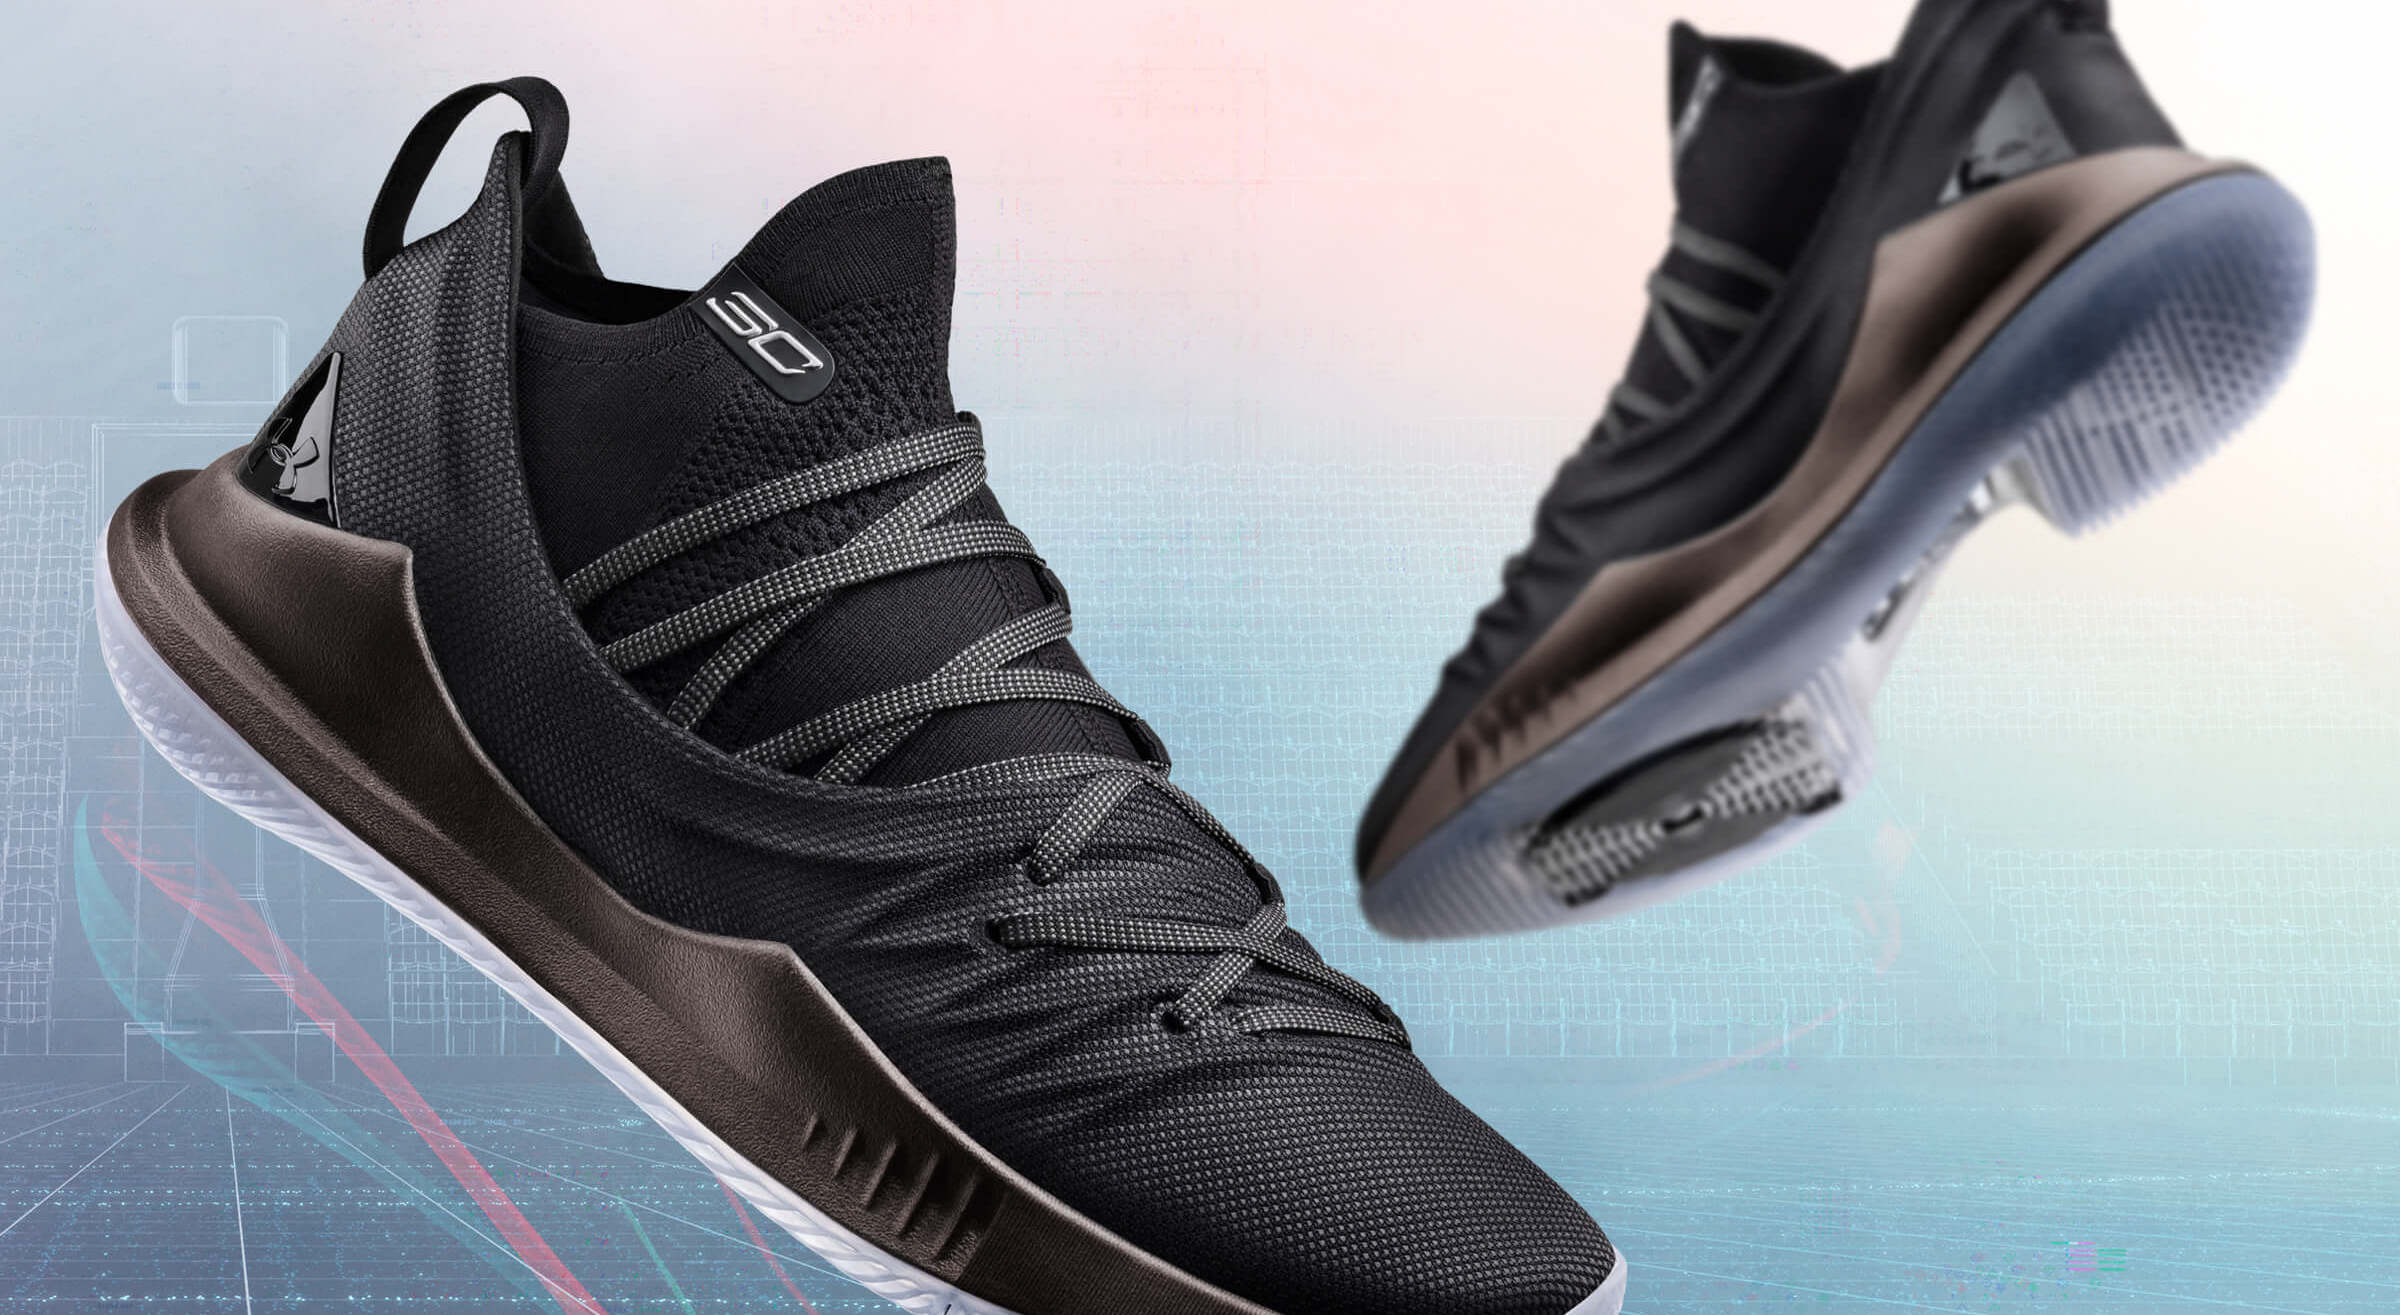 Stephen Curry dévoile l'Under Armour Curry 5